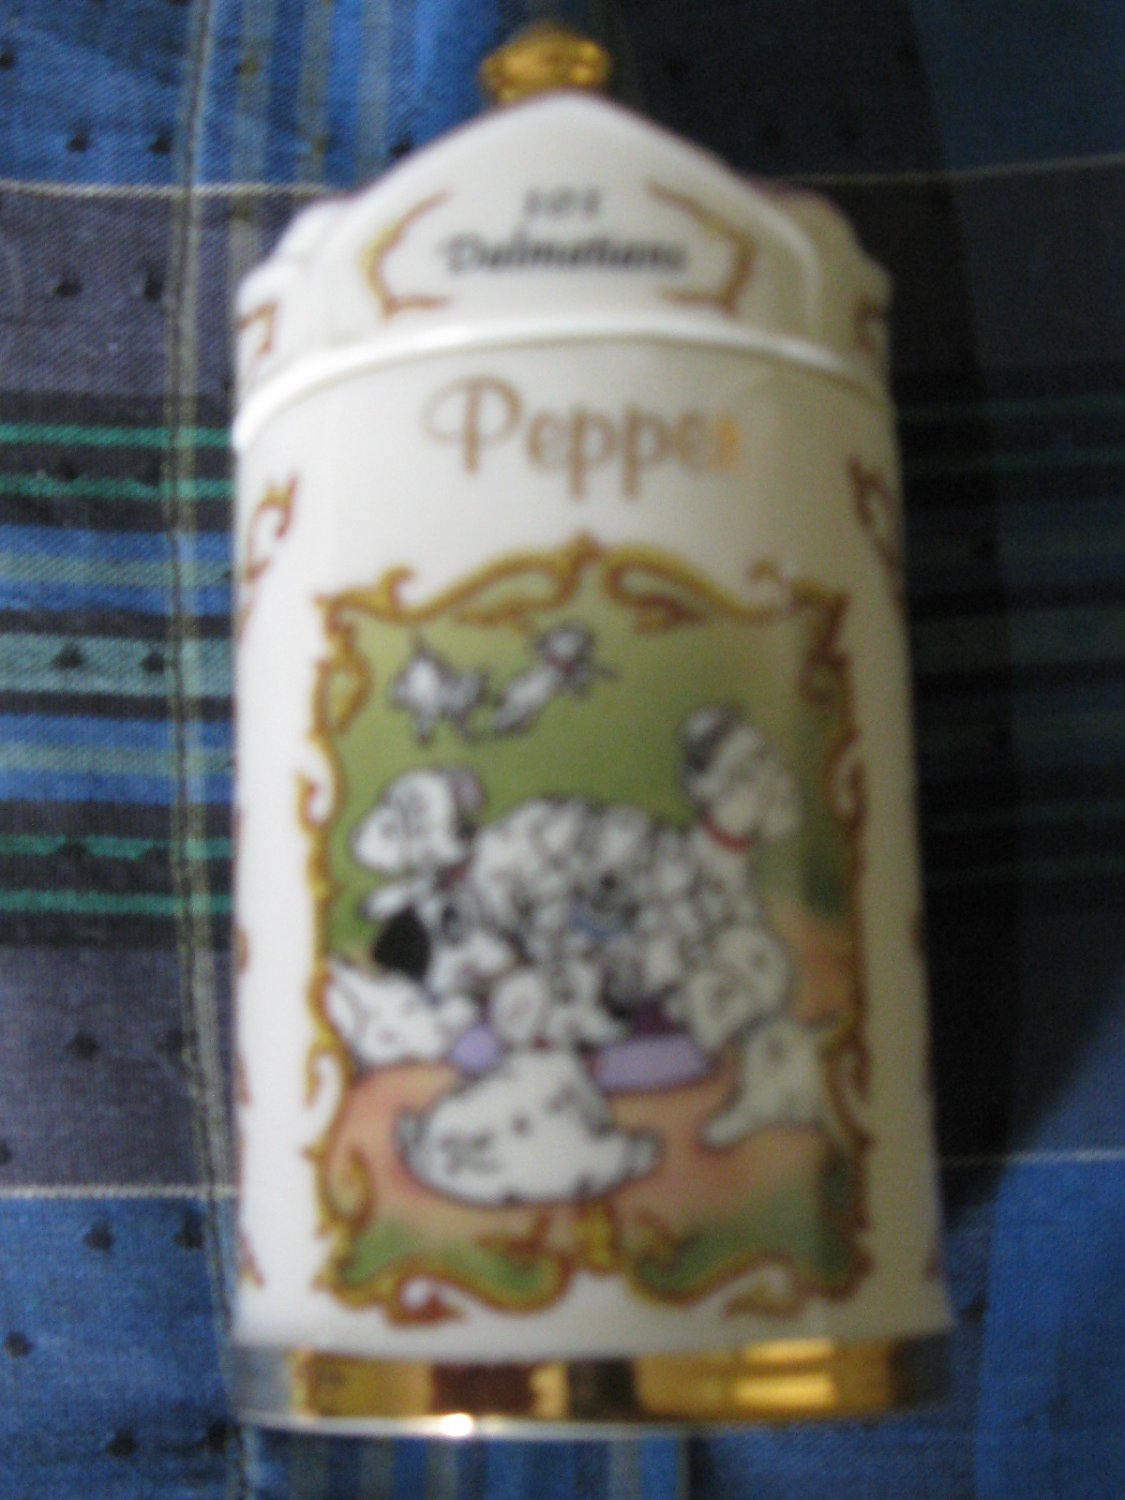 Awesome Disney 101 Dalmations Pepper Spice Jar Lenox 1995 Collection